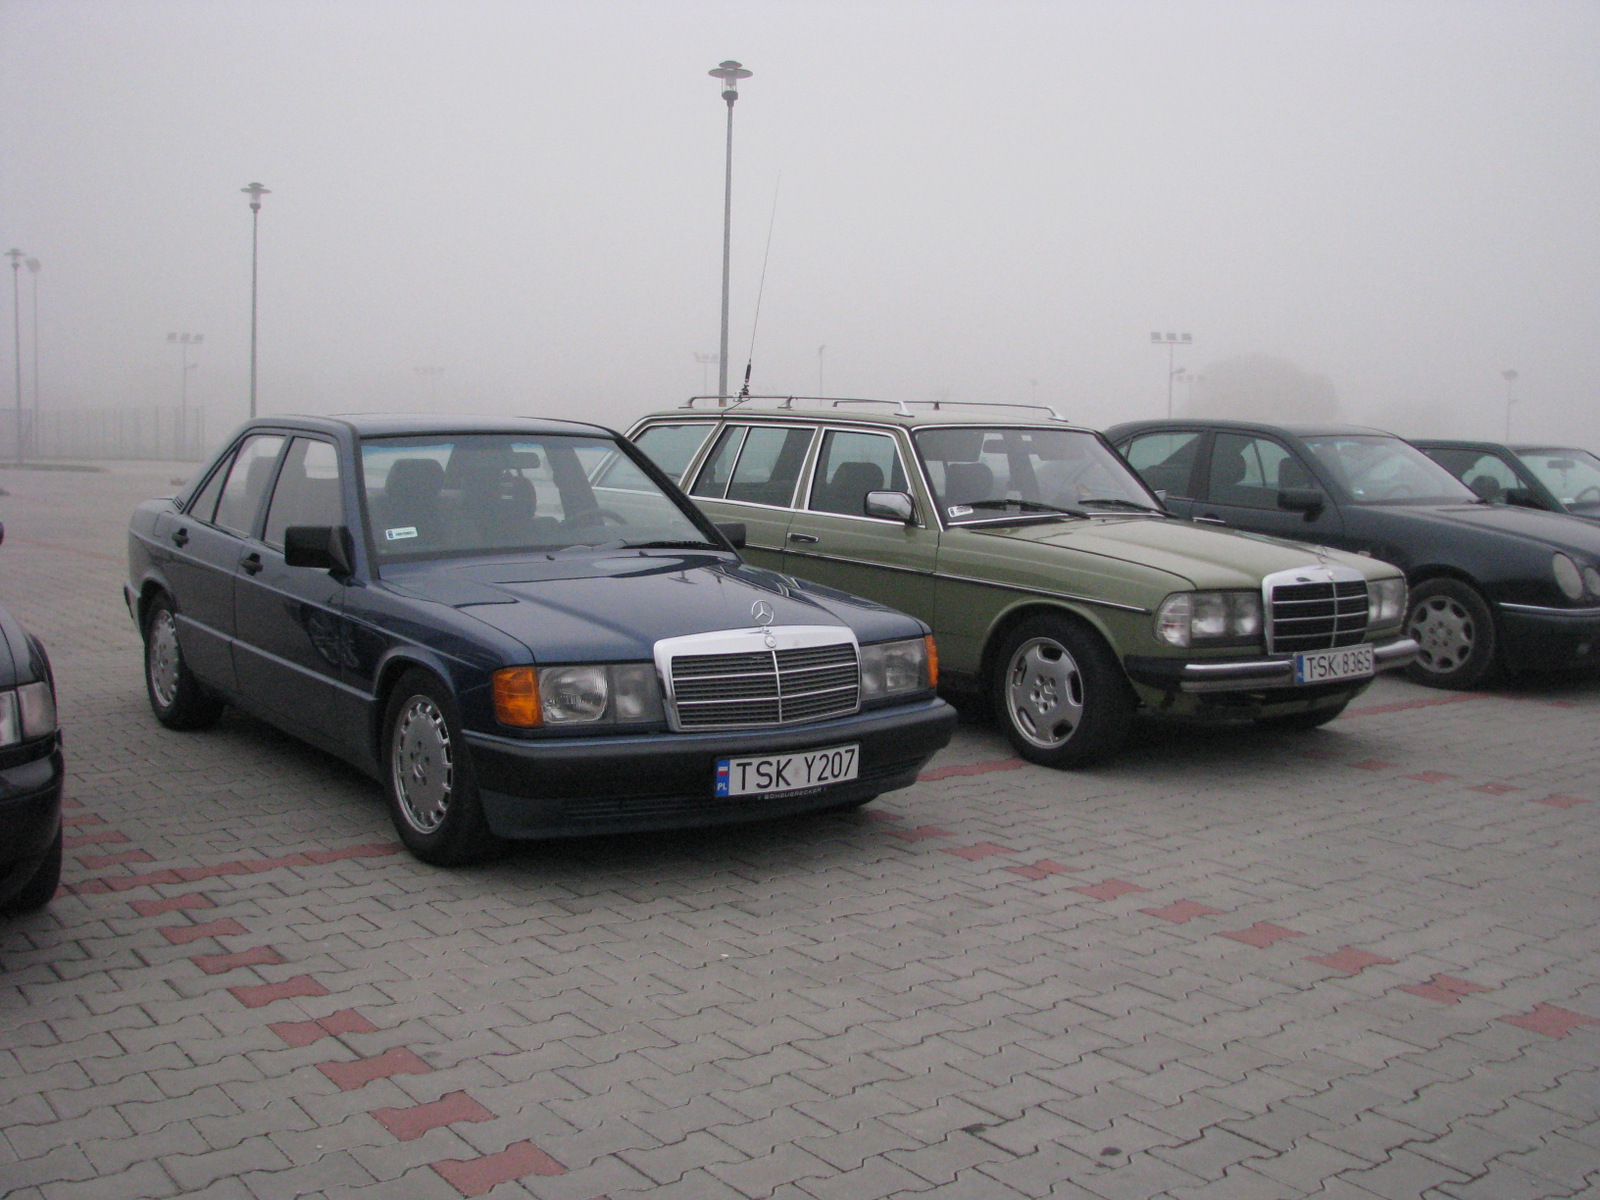 http://124coupe.pl/hosting/images/img000ggg.jpg